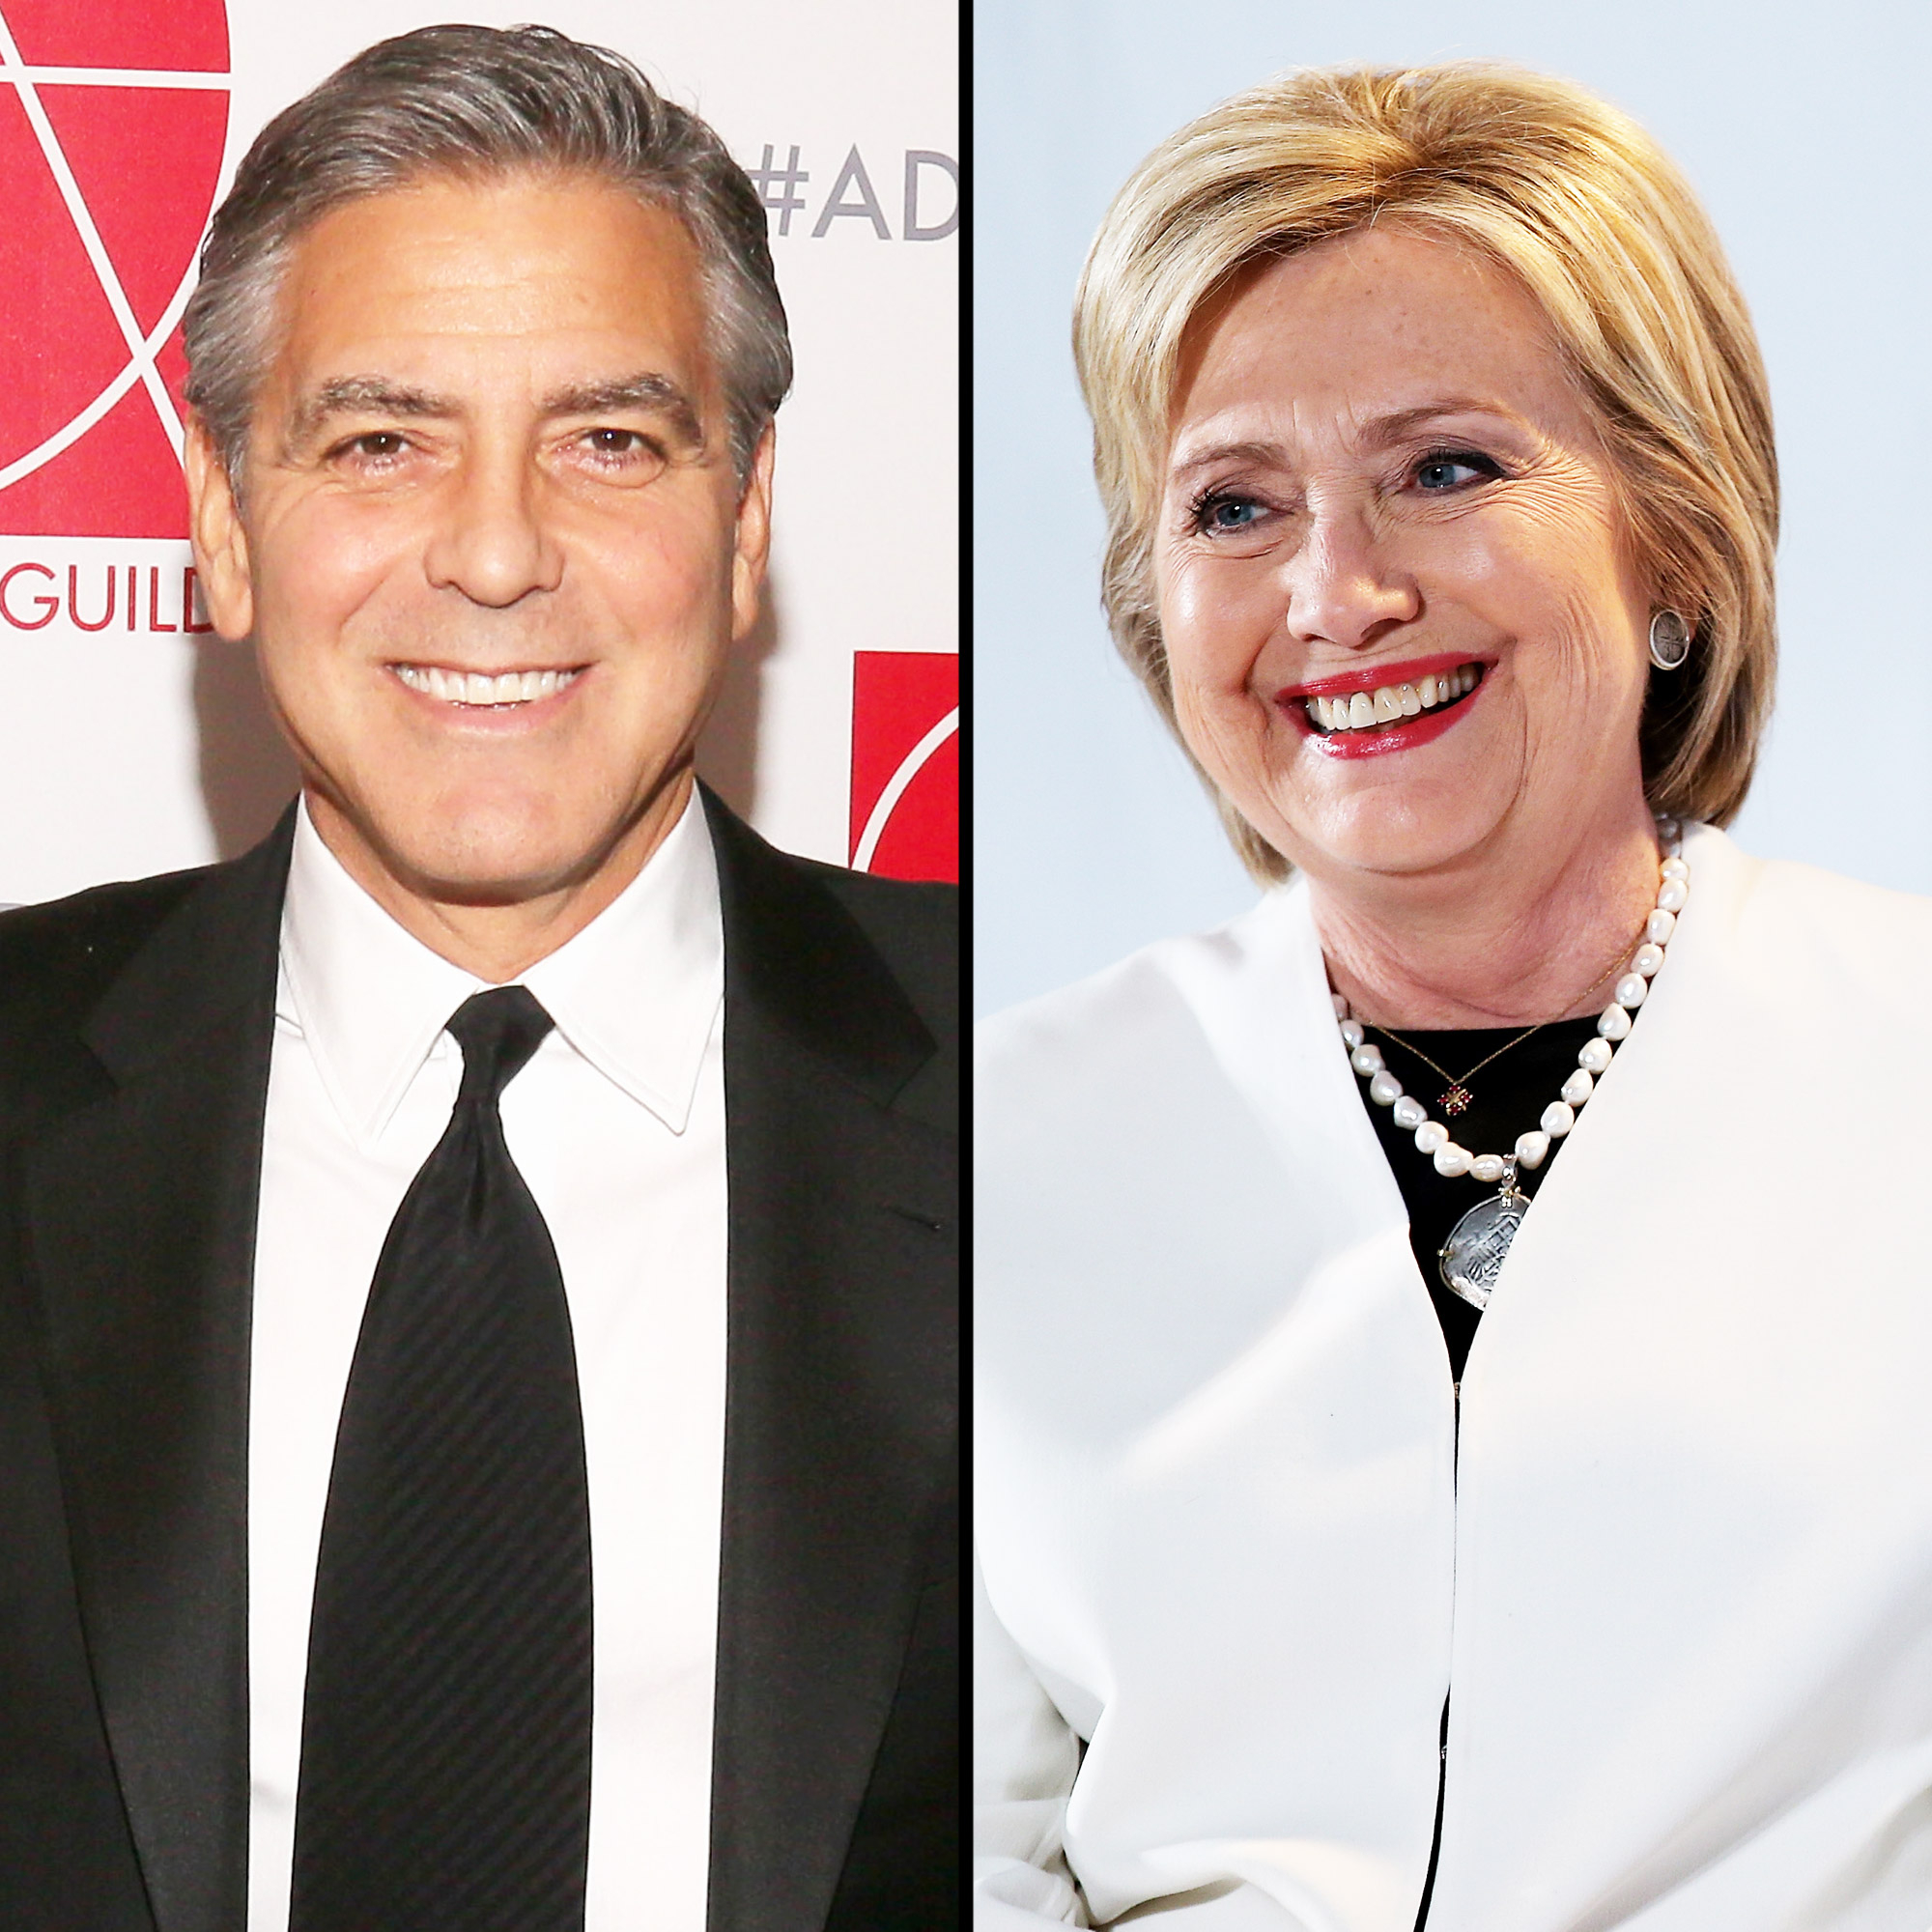 George Clooney and Hillary Clinton